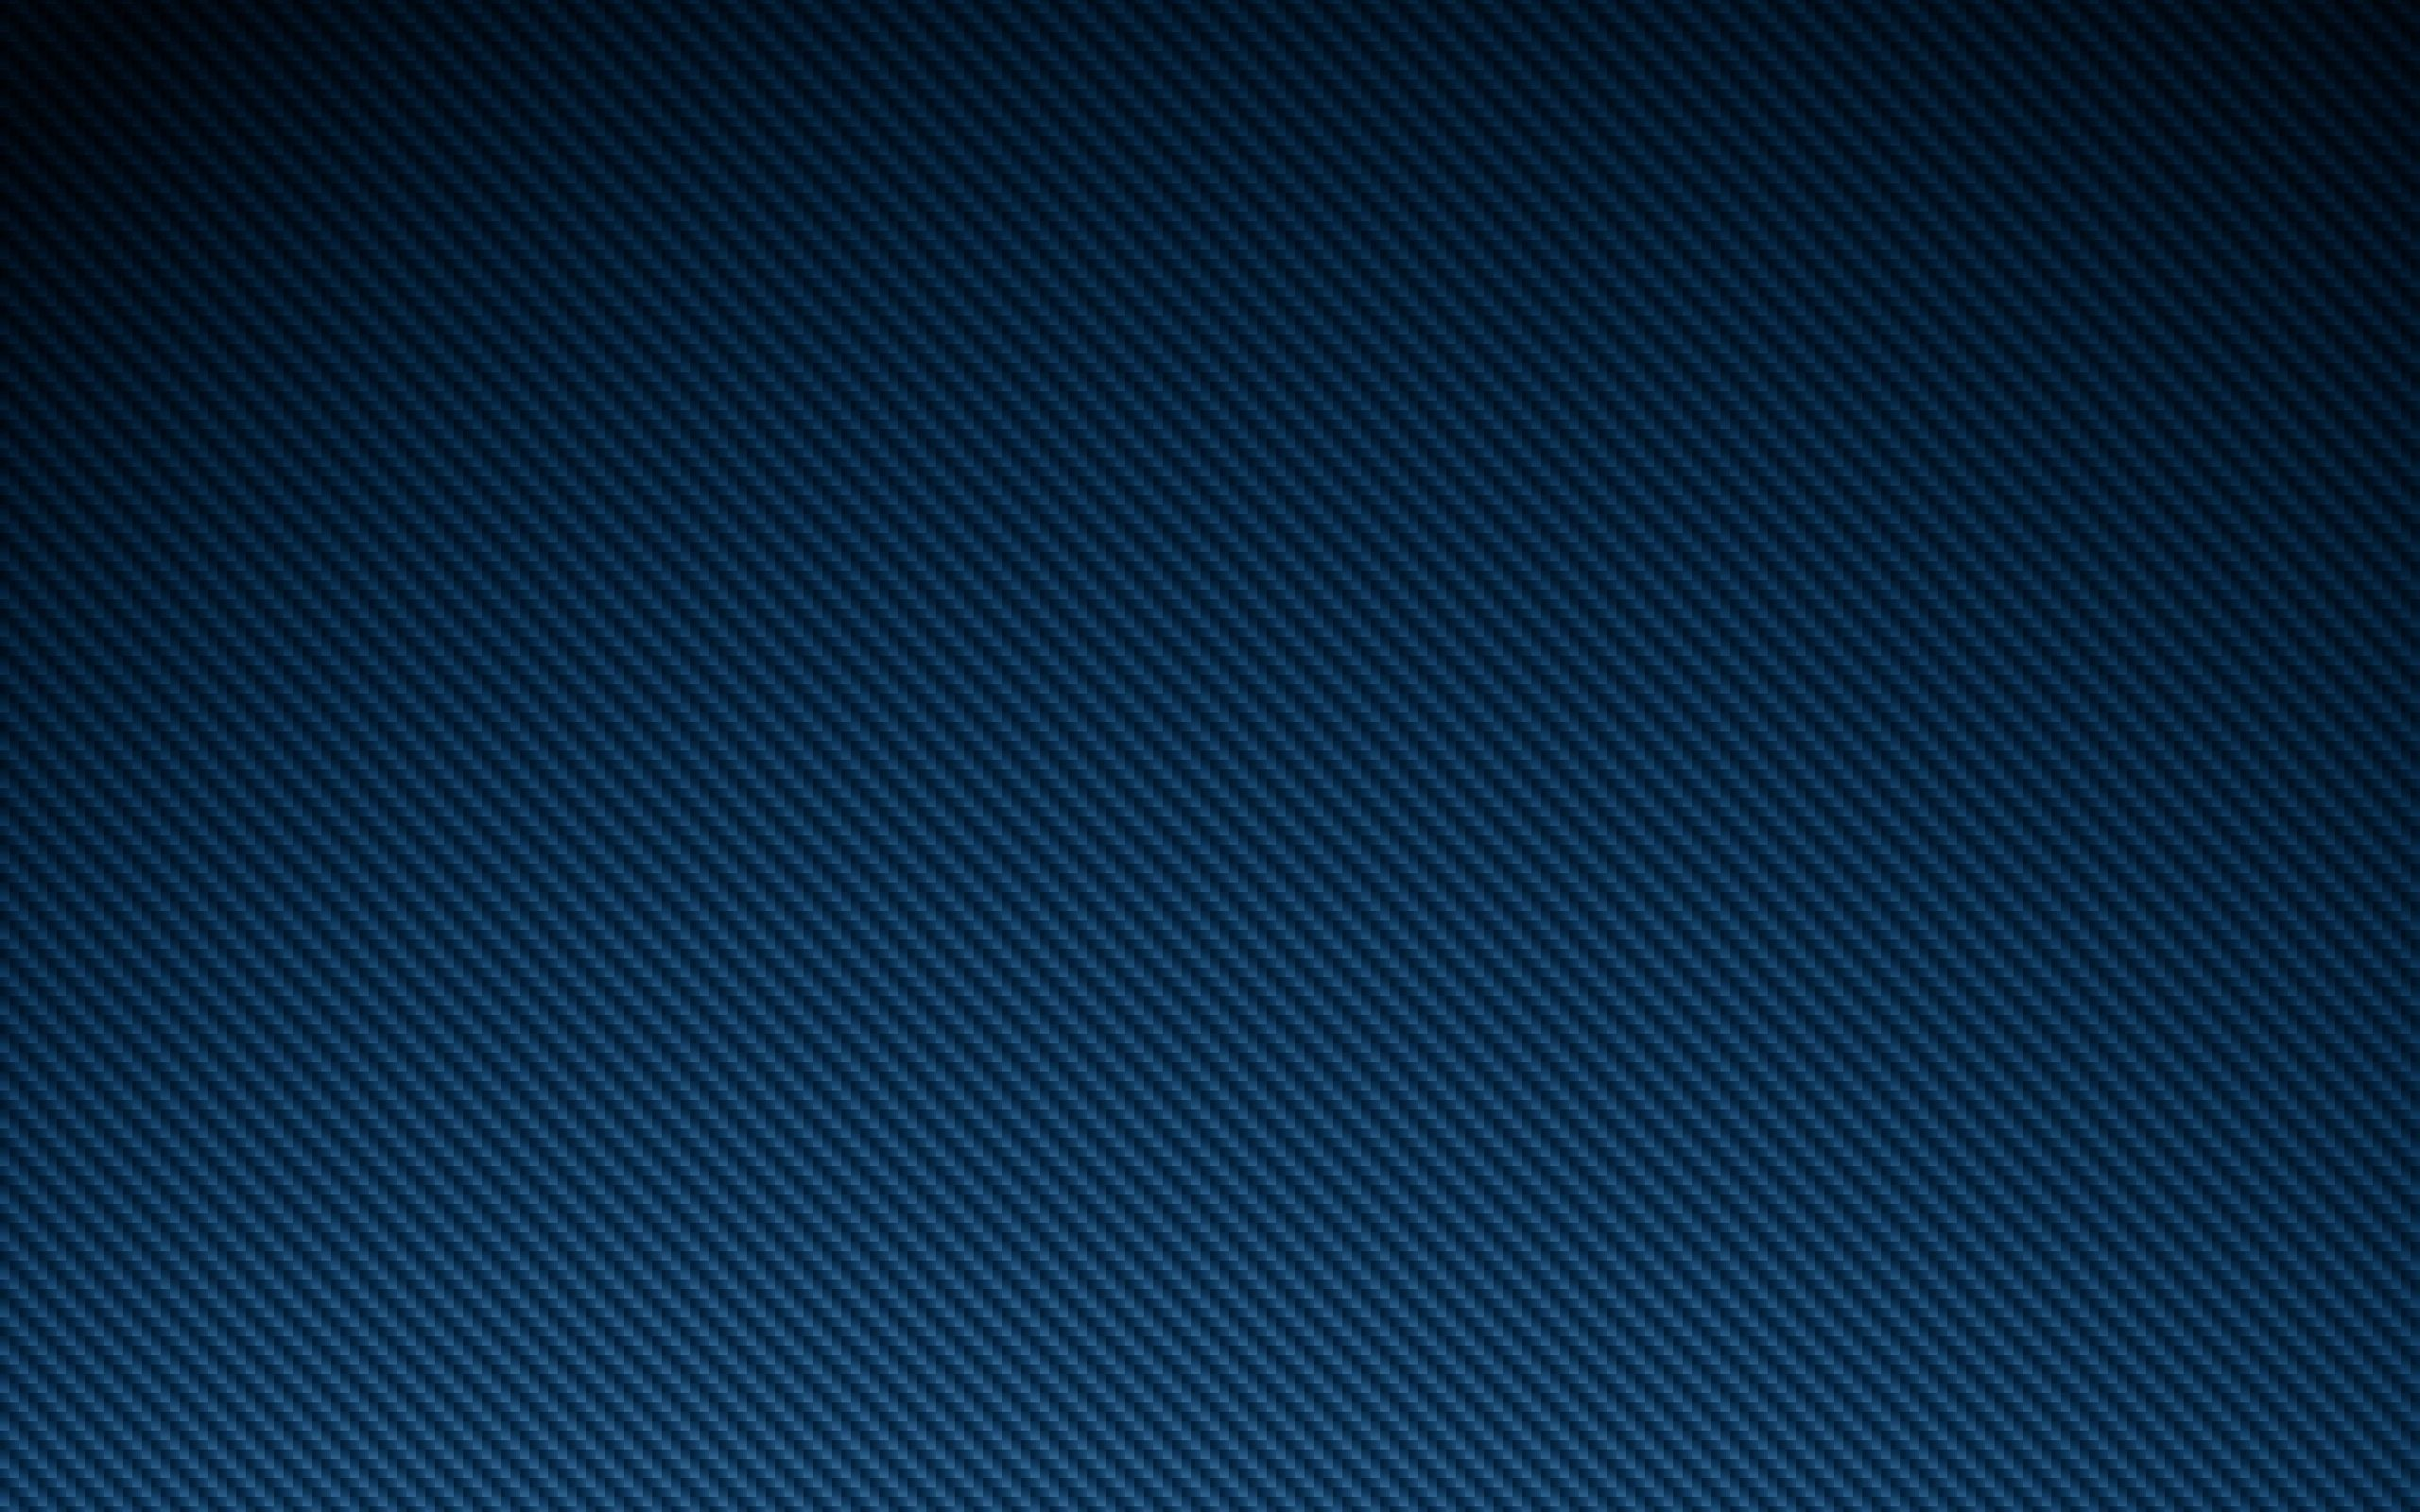 2560x1600 Blue Carbon Fiber Wallpaper HD | PixelsTalk.Net | Android ...